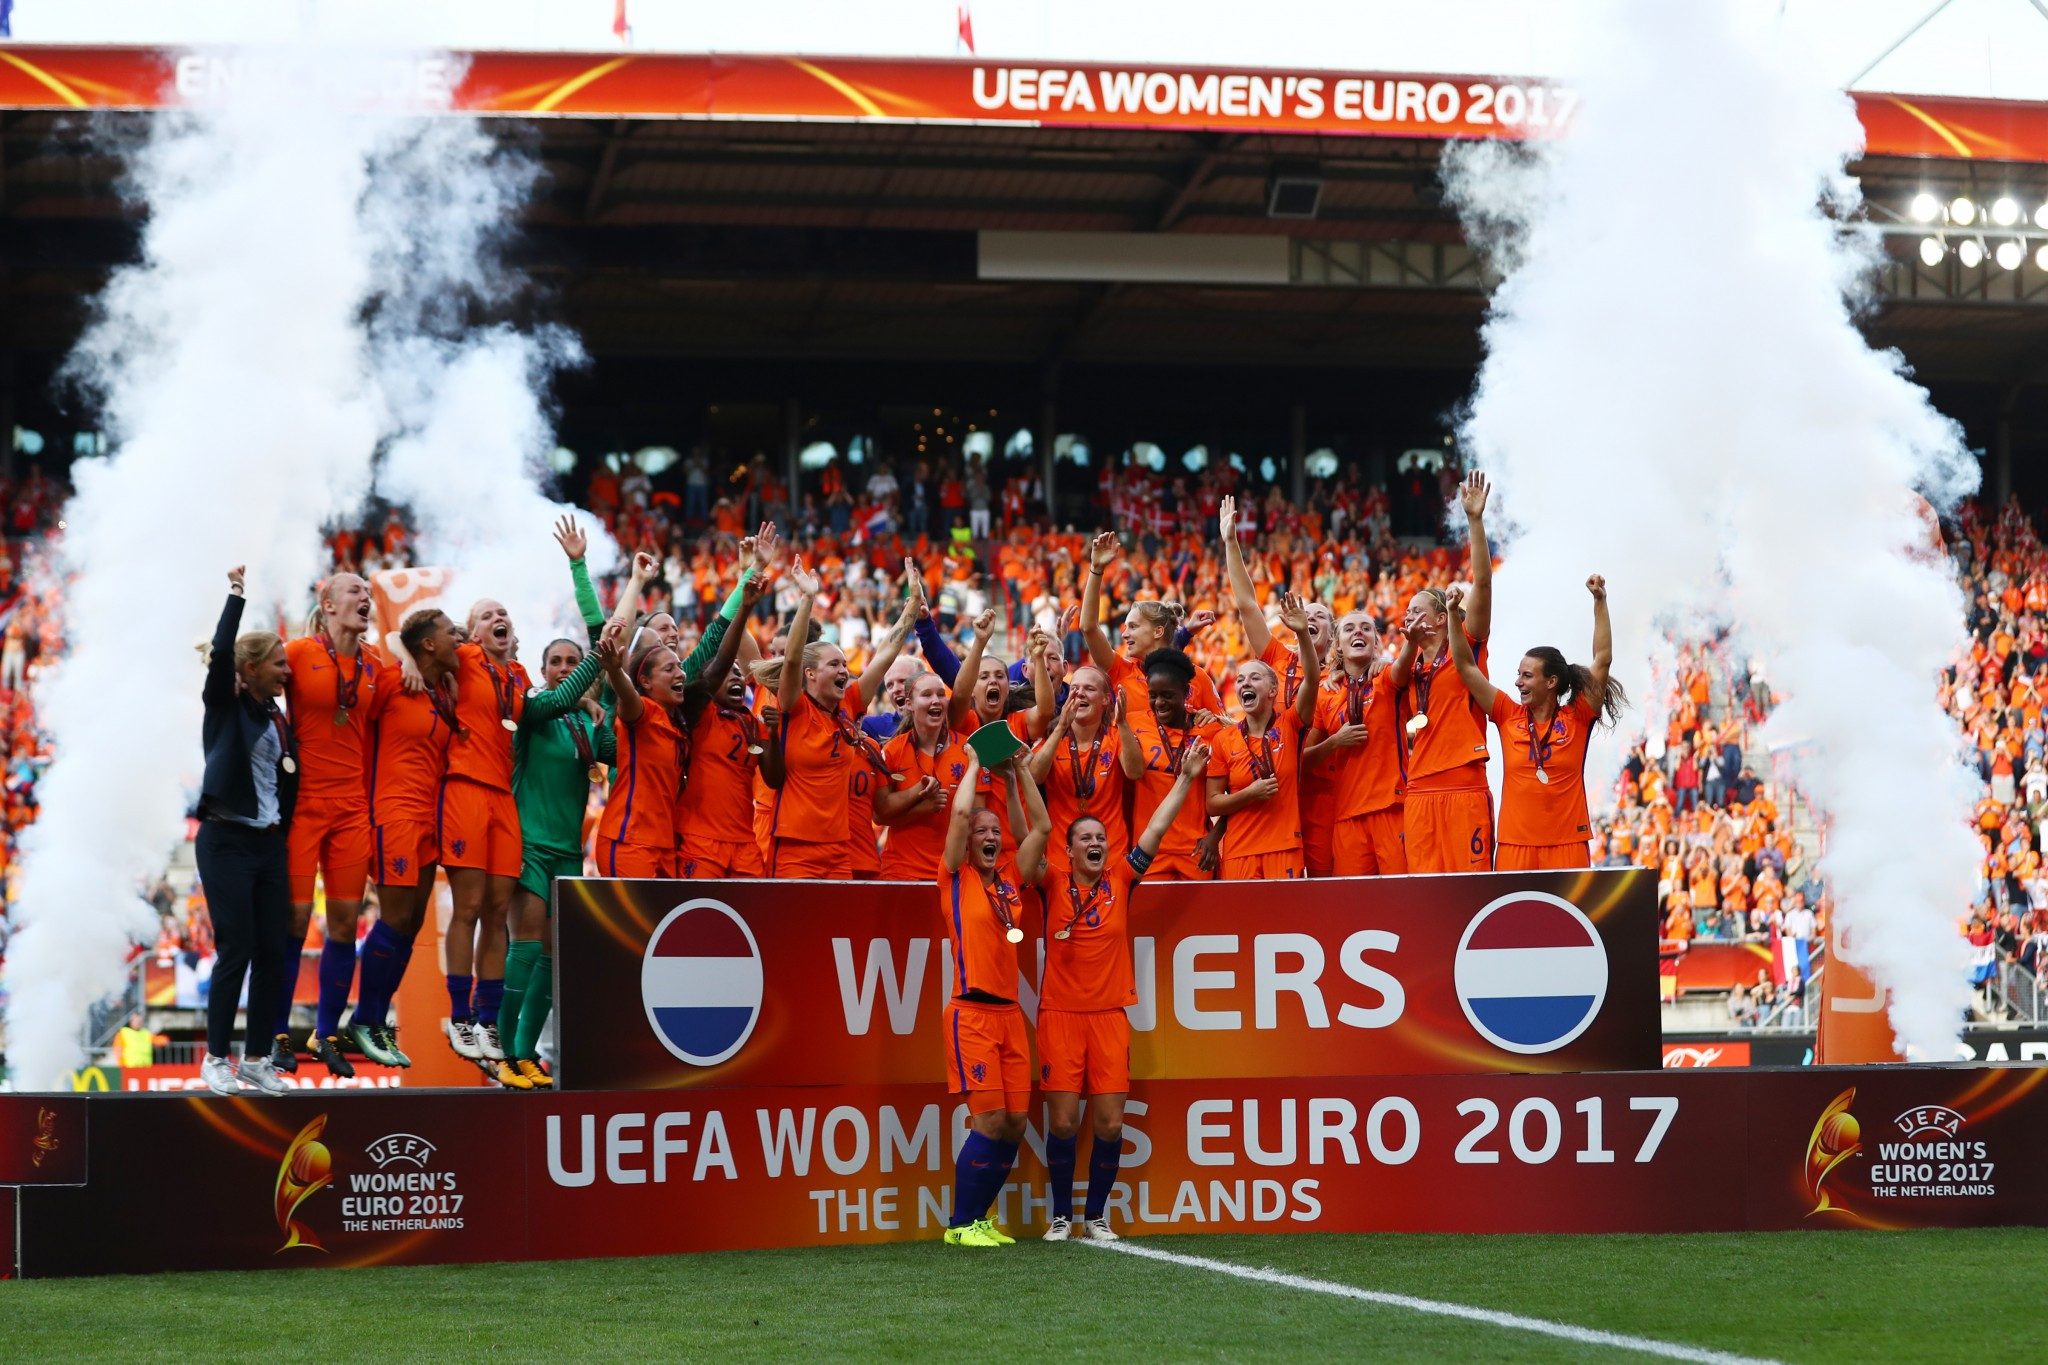 Dutch delight as hosts win thrilling UEFA Women's European Championships final against Denmark